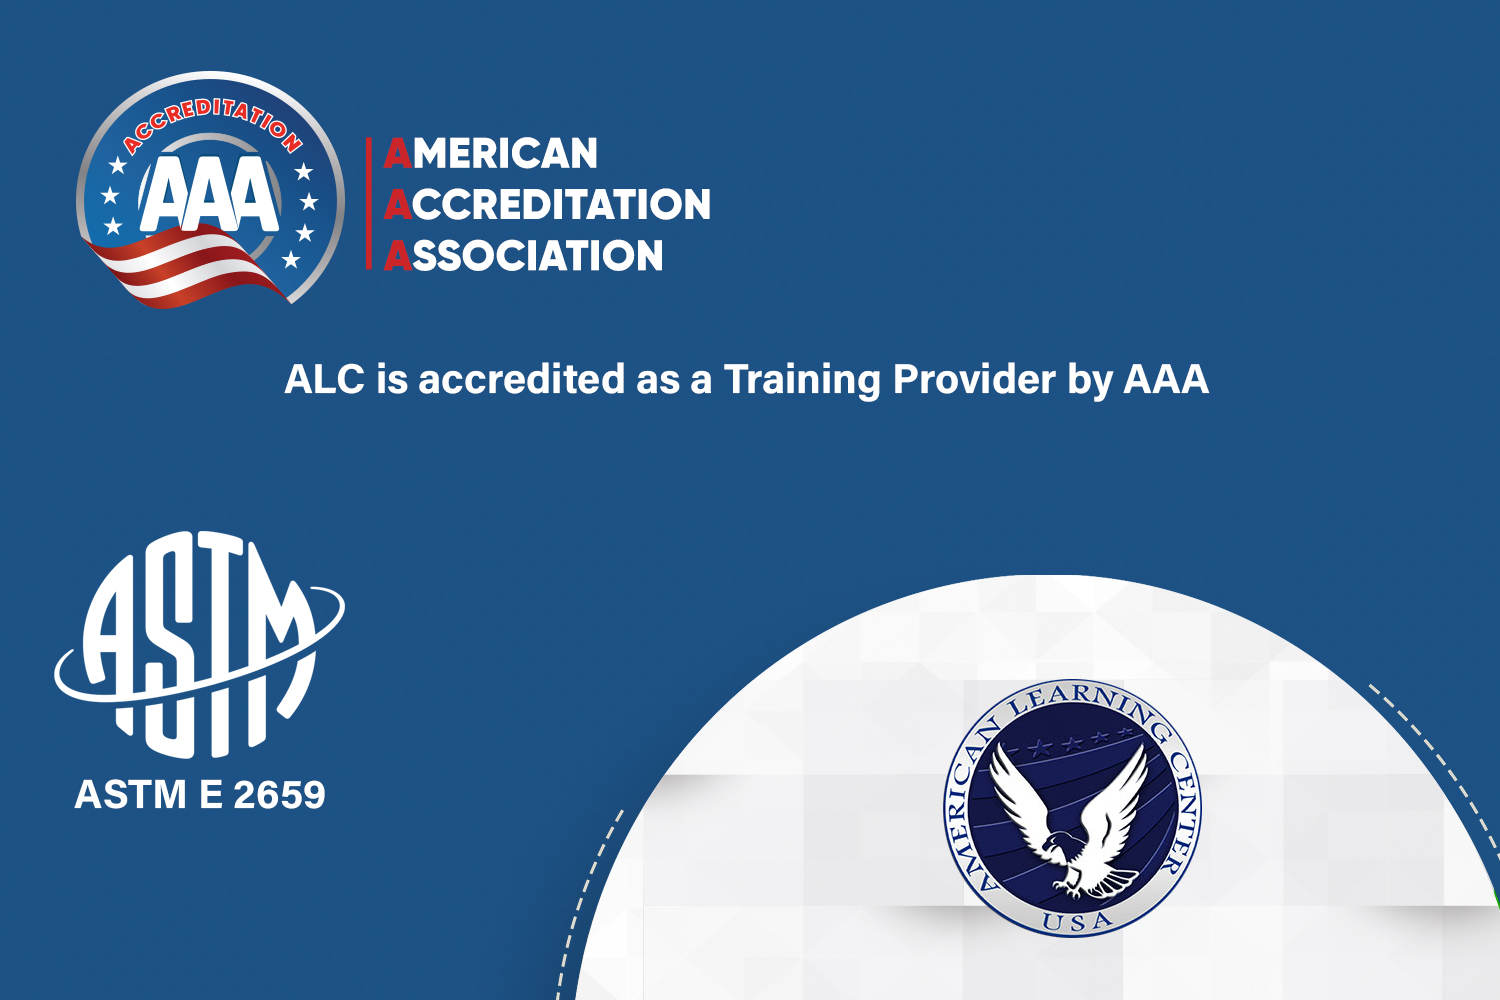 ALC is accredited as a Training Provider by AAA